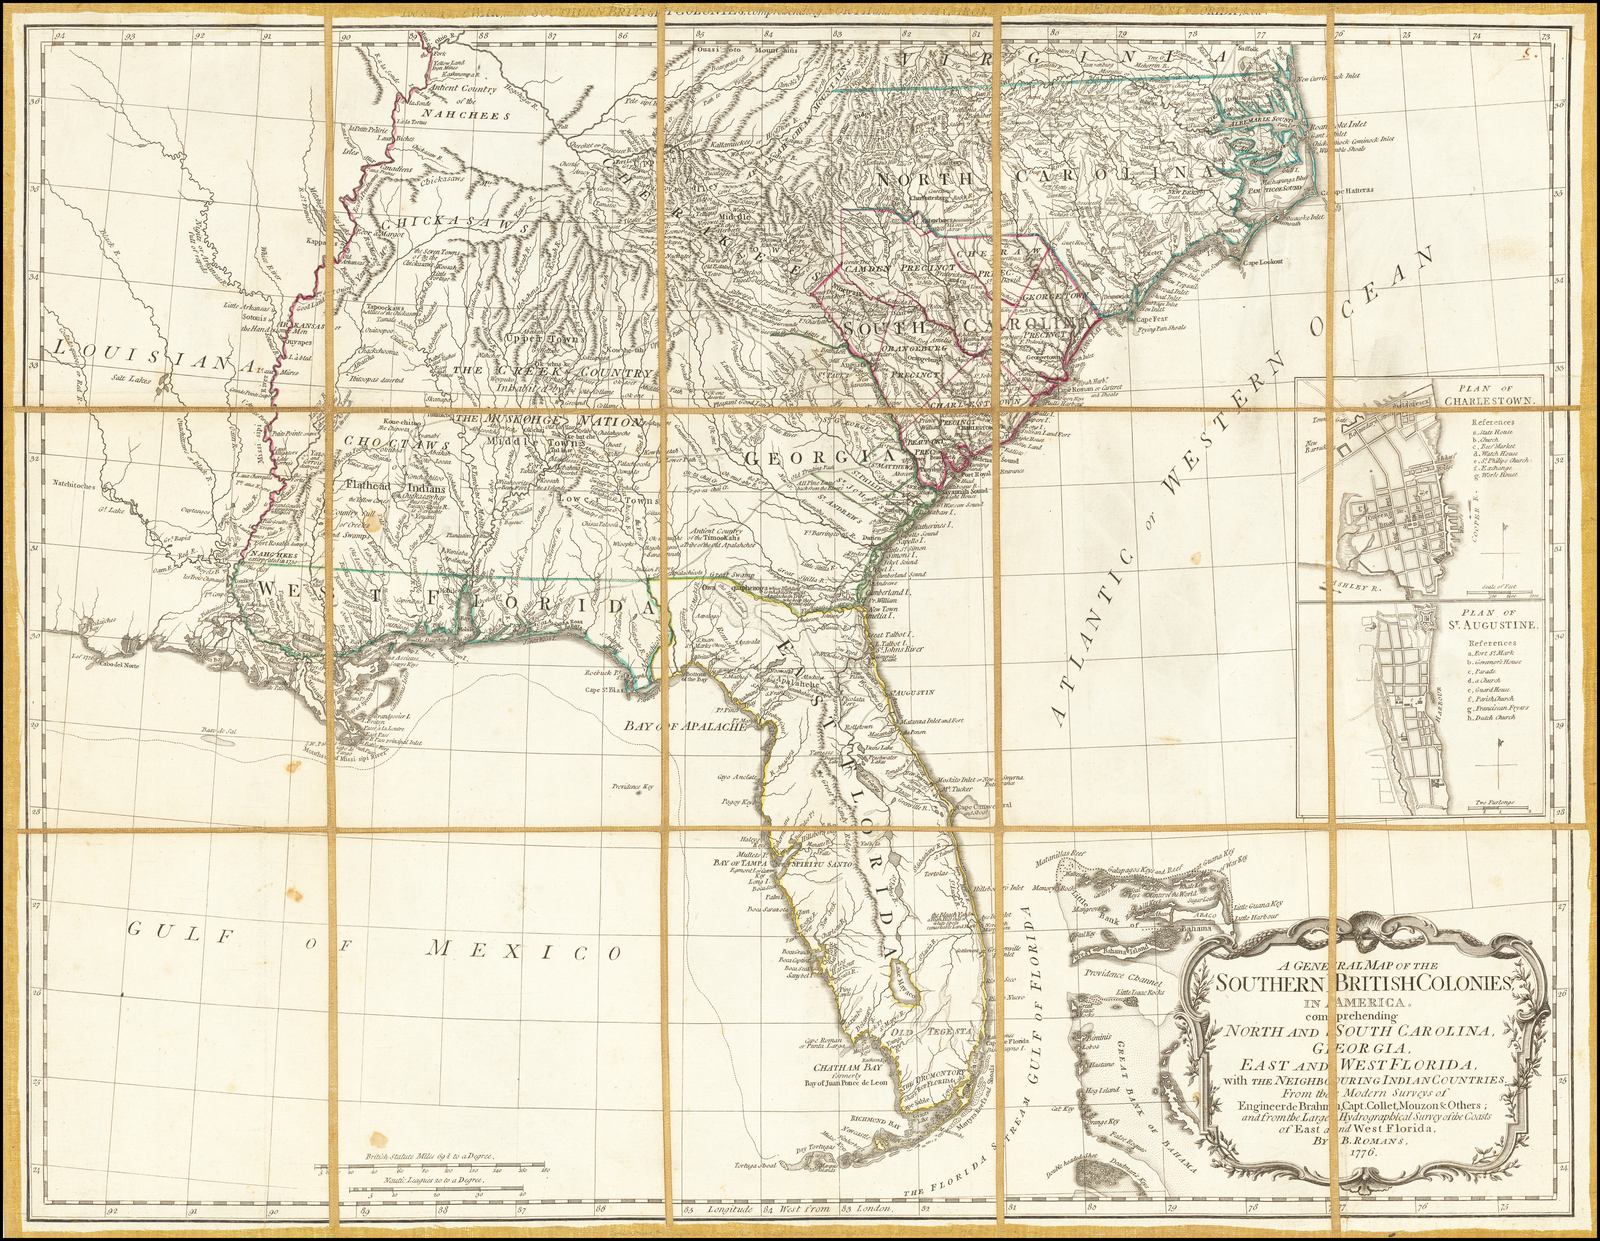 A General Map of the Southern British Colonies in America ...